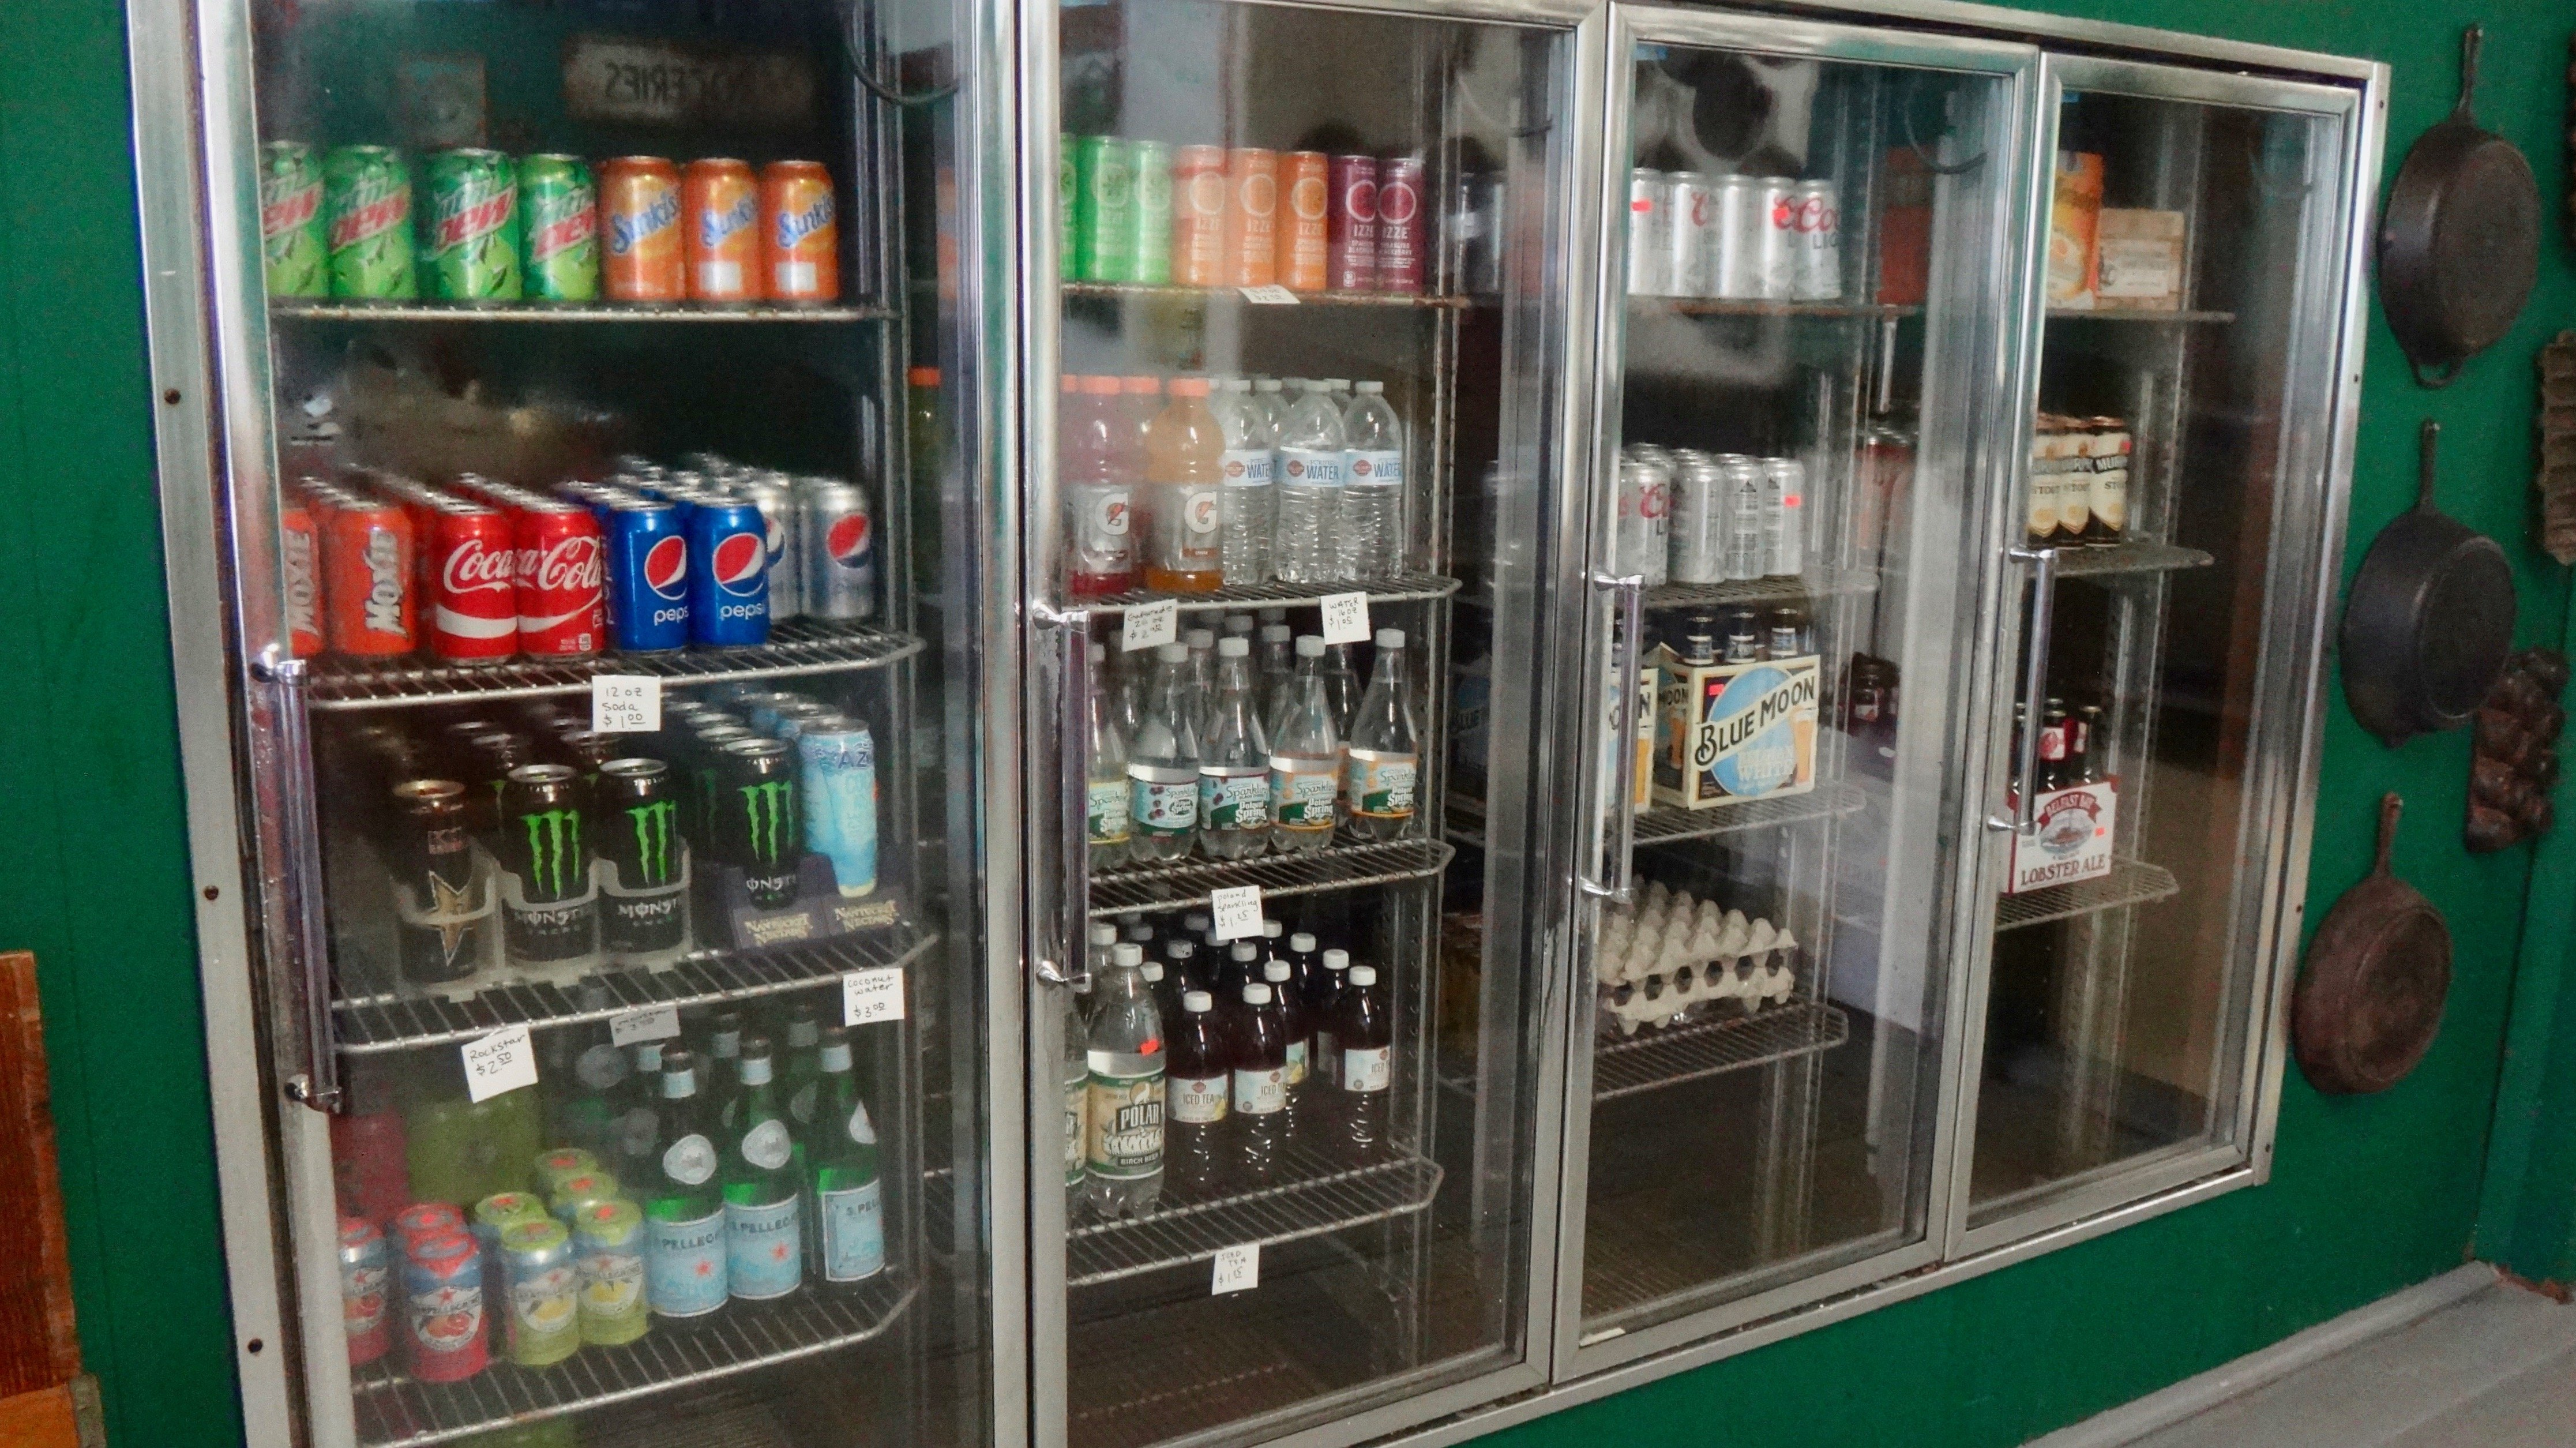 Soft drinks and dairy items for your convenience.